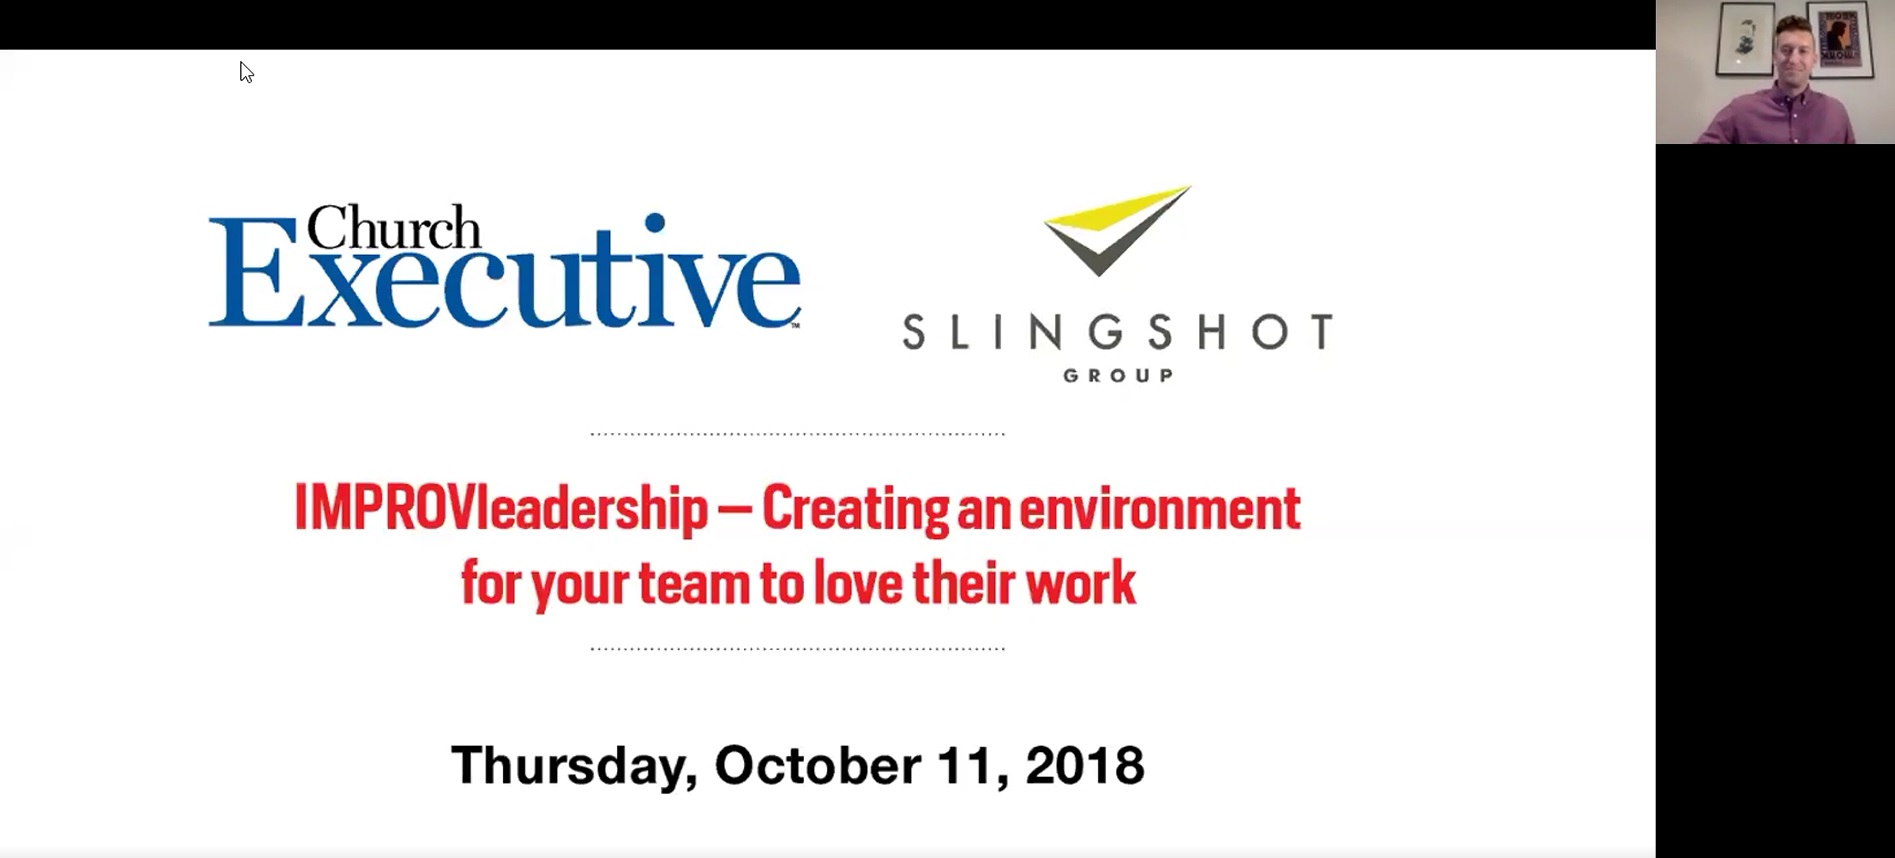 IMPROVleadership -- Creating an environment for your team to love their work